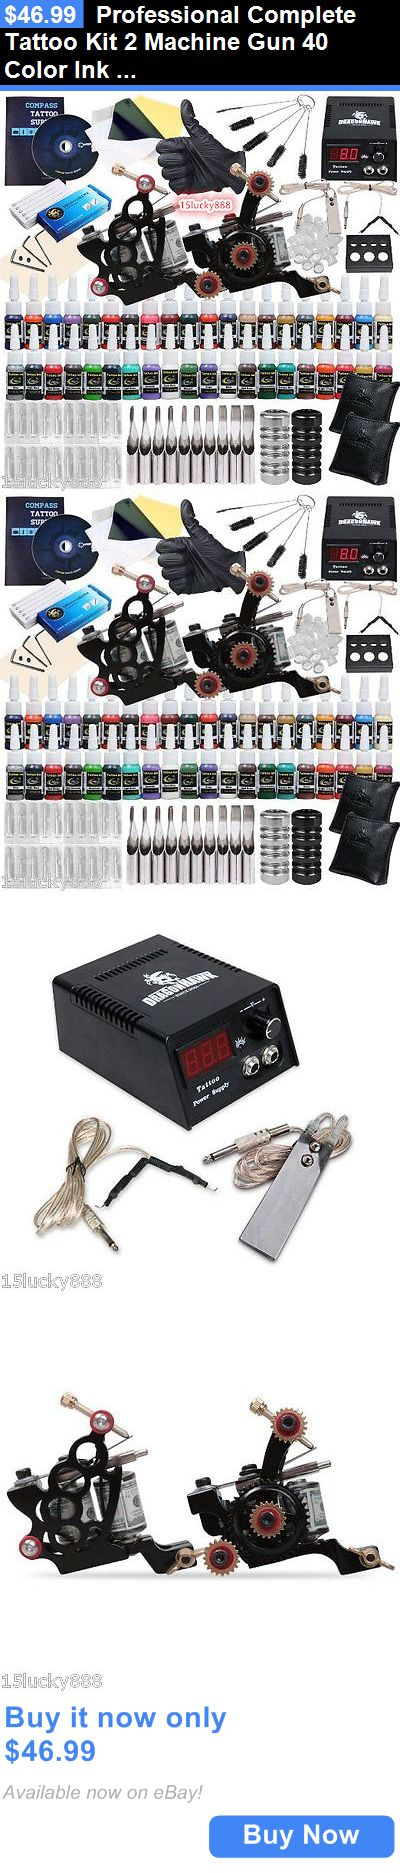 Tattoo Complete Kits: Professional Complete Tattoo Kit 2 Machine Gun 40 Color Ink Needle Power Supply BUY IT NOW ONLY: $46.99